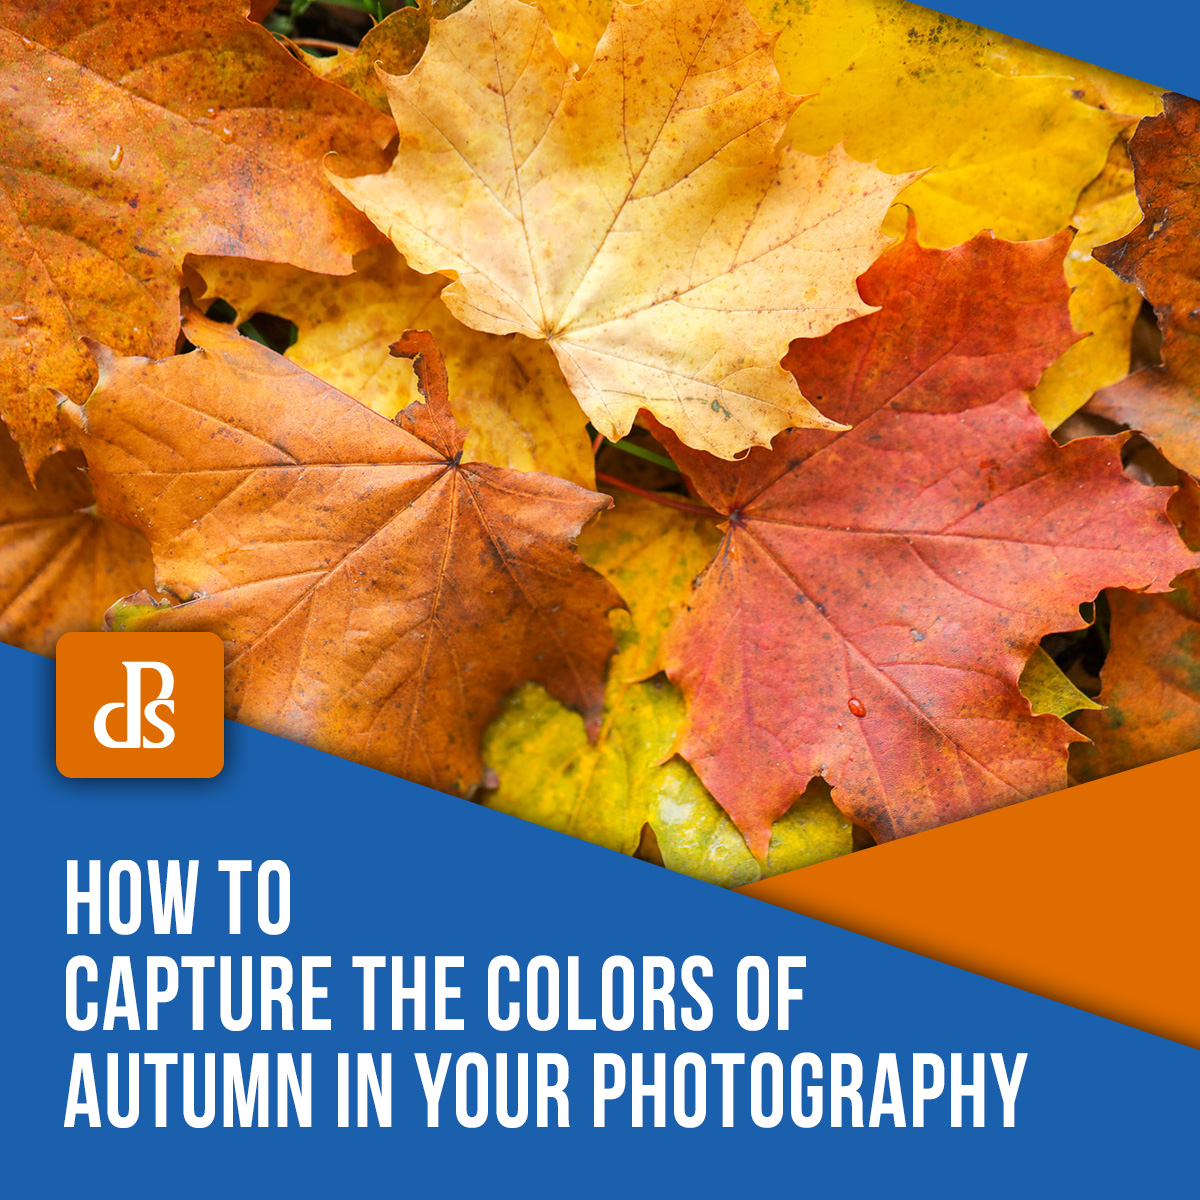 capture-colors-of-autumn-in-photography